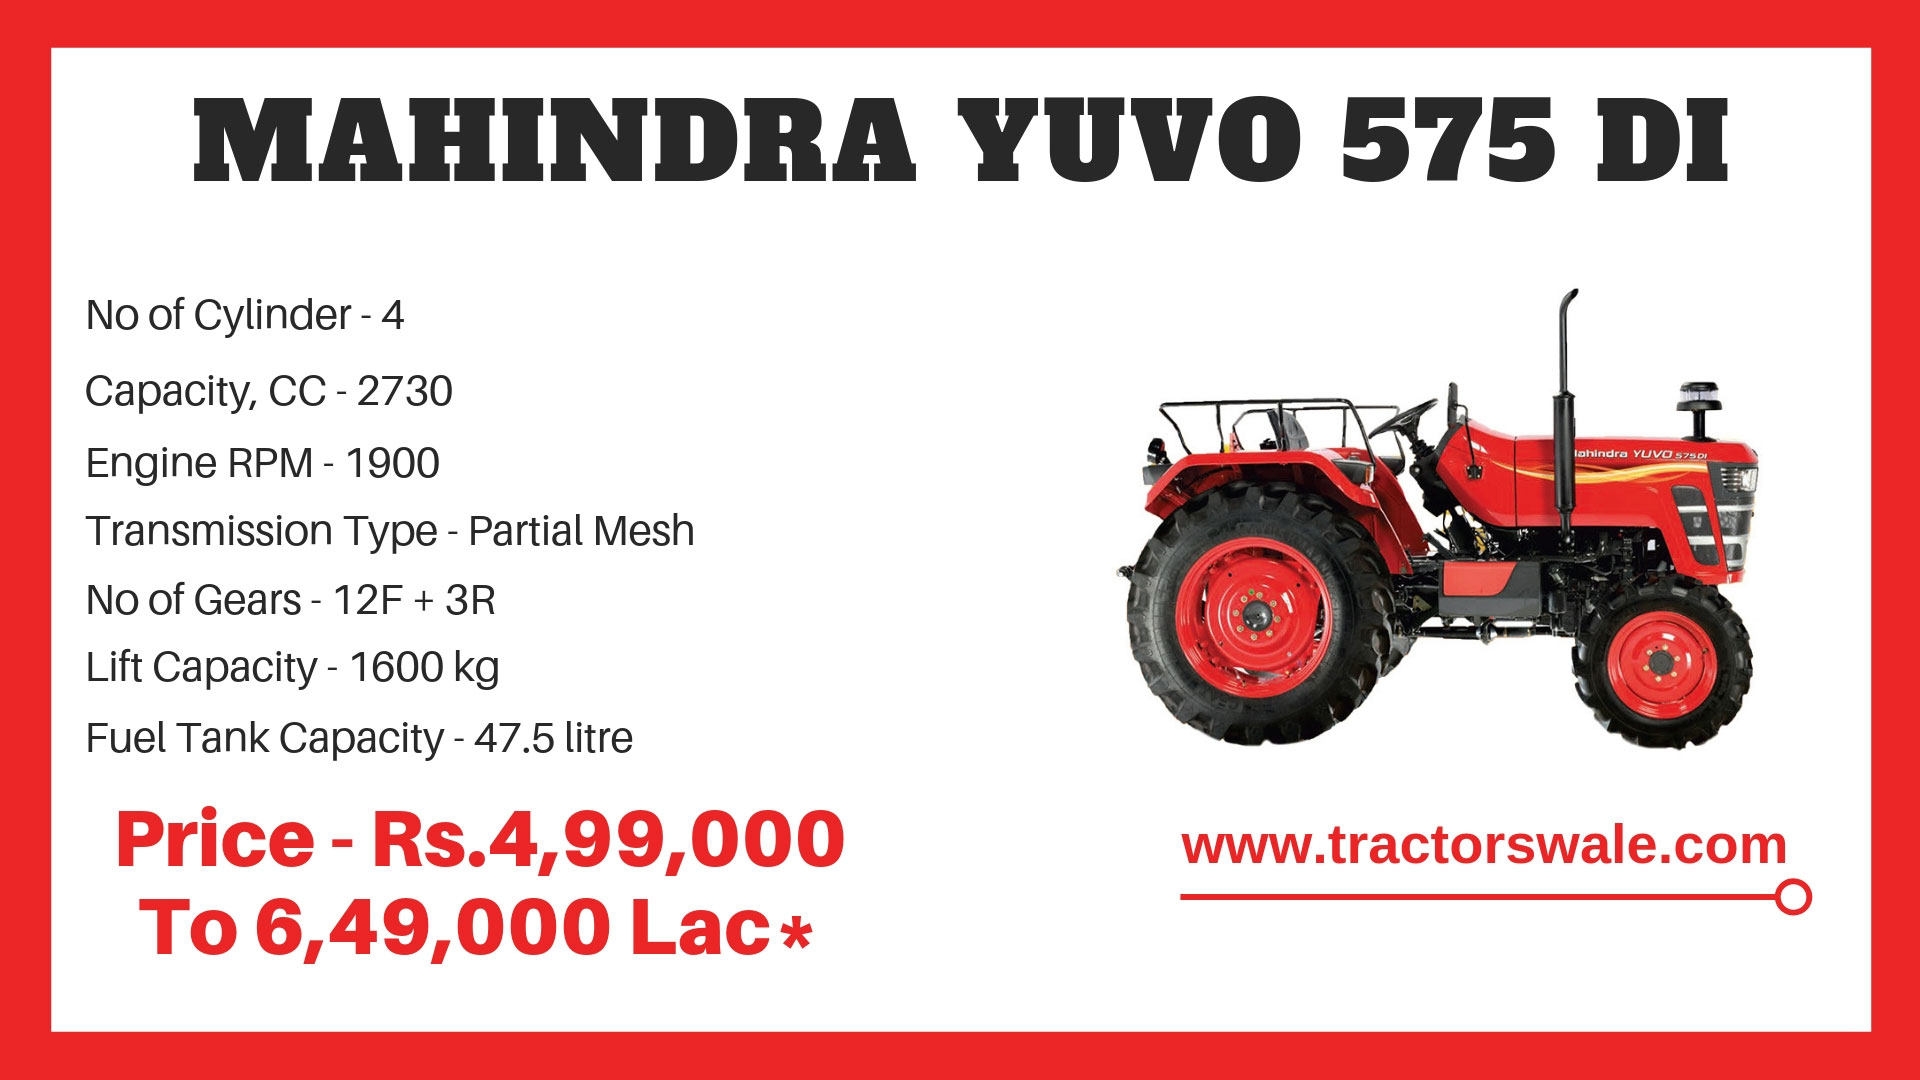 Mahindra-Yuvo-575-DI-tractor-price-and-specifications